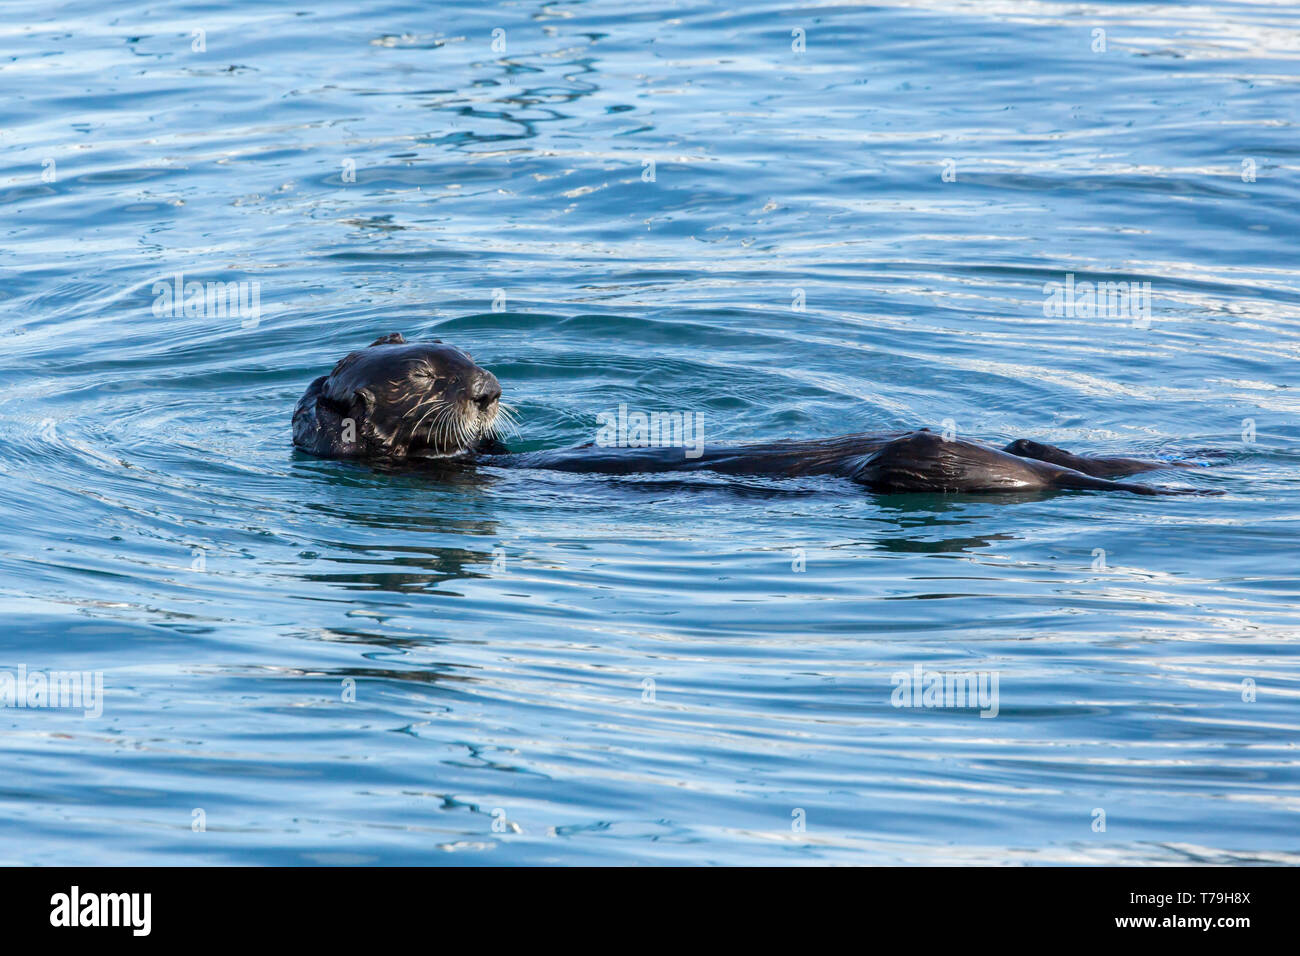 Sea Otter (Enhydra lutris) entangling itself to strings to prevent itself from drifting away, Monterey Bay, California Stock Photo